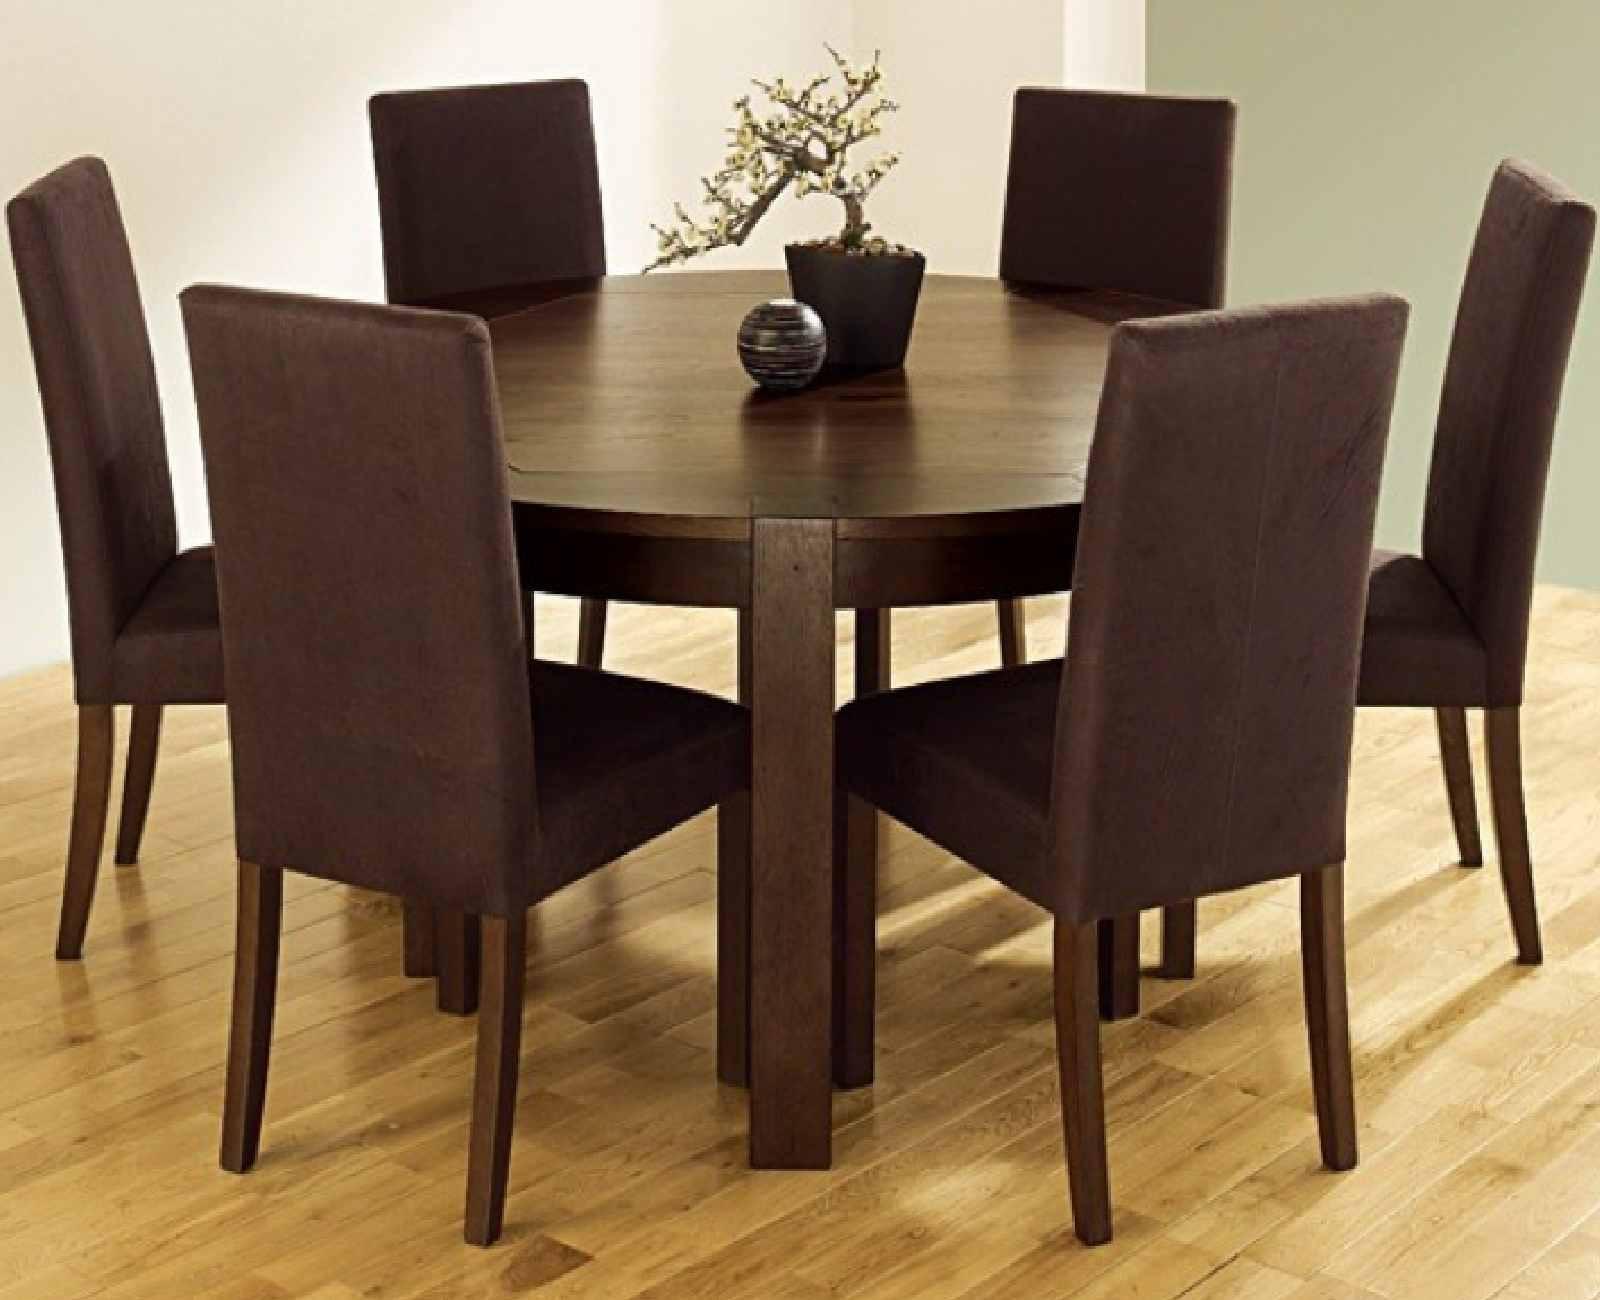 Best ideas about Dining Room Tables . Save or Pin Using Round Dining Tables Pros and Cons Traba Homes Now.